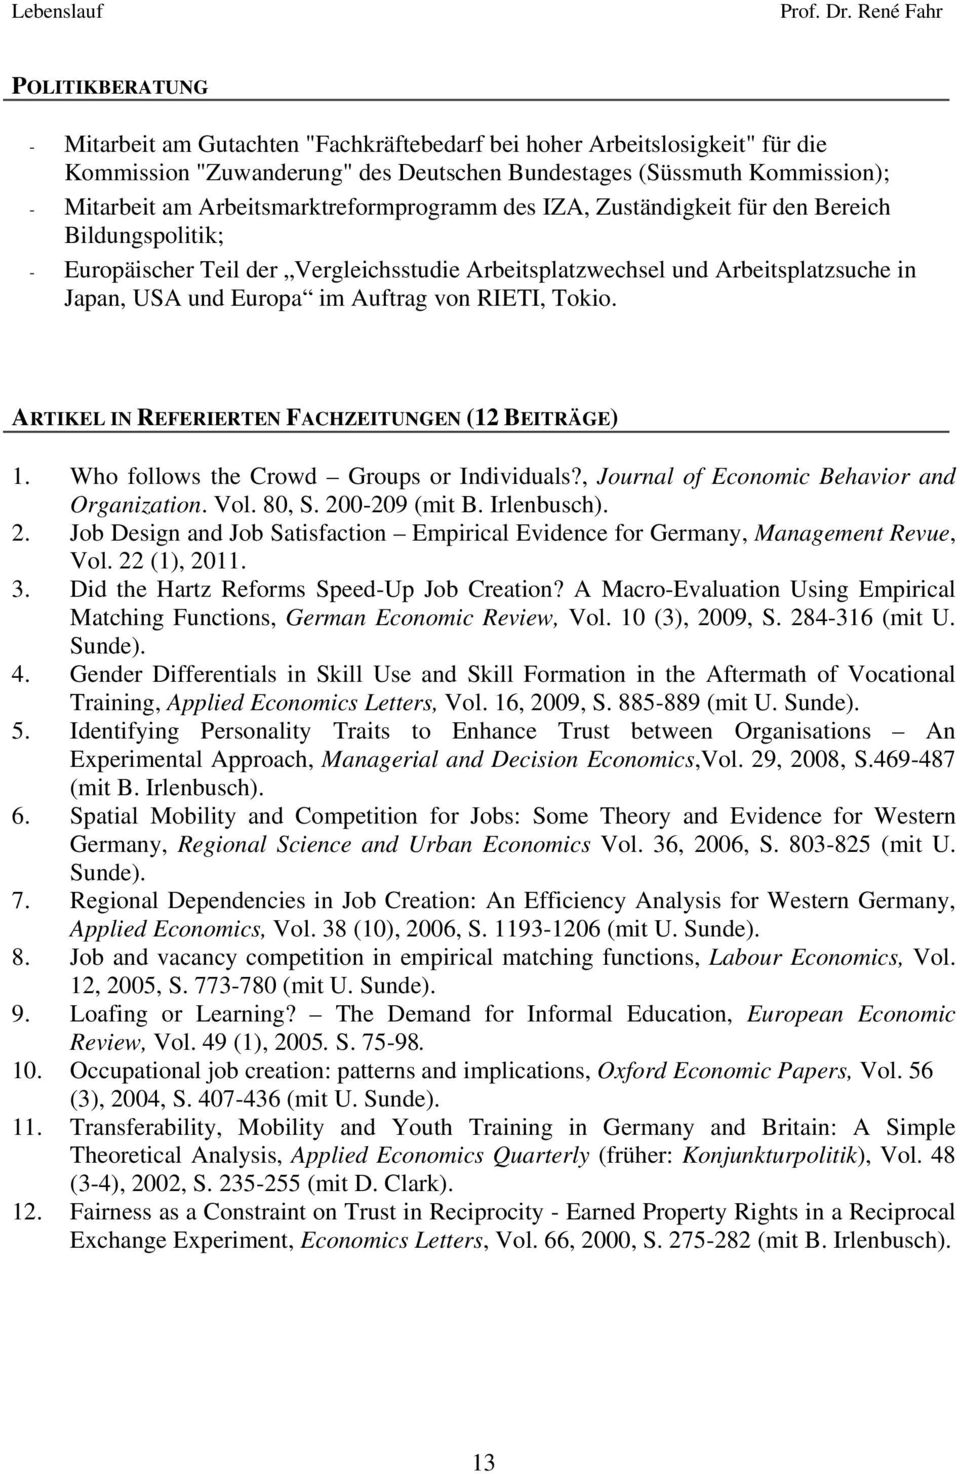 Auftrag von RIETI, Tokio. ARTIKEL IN REFERIERTEN FACHZEITUNGEN (12 BEITRÄGE) 1. Who follows the Crowd Groups or Individuals?, Journal of Economic Behavior and Organization. Vol. 80, S. 200-209 (mit B.